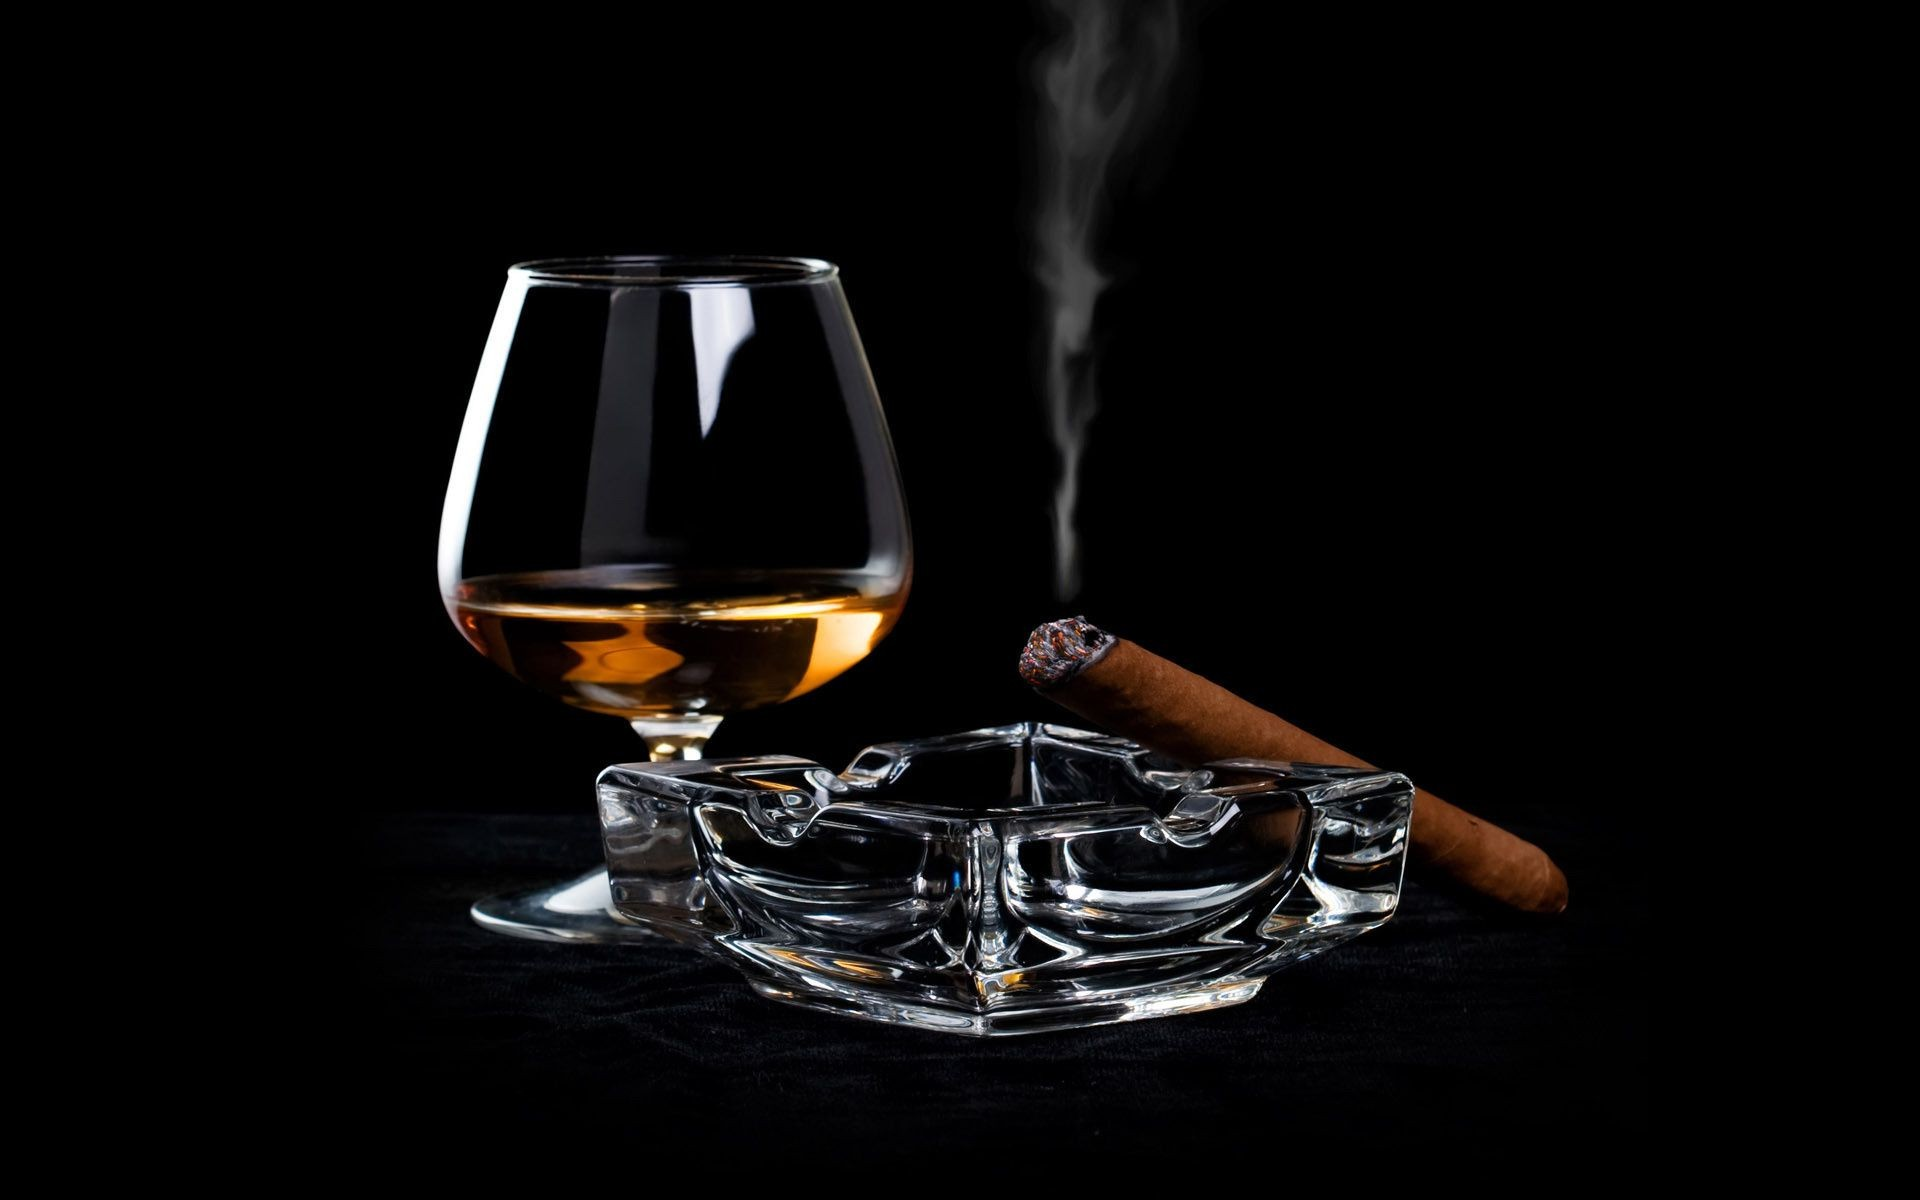 drinks drink glass wine whisky cognac alcohol liquor liquid desktop scotch bottle bar dark intoxicated amber bourbon addiction hot